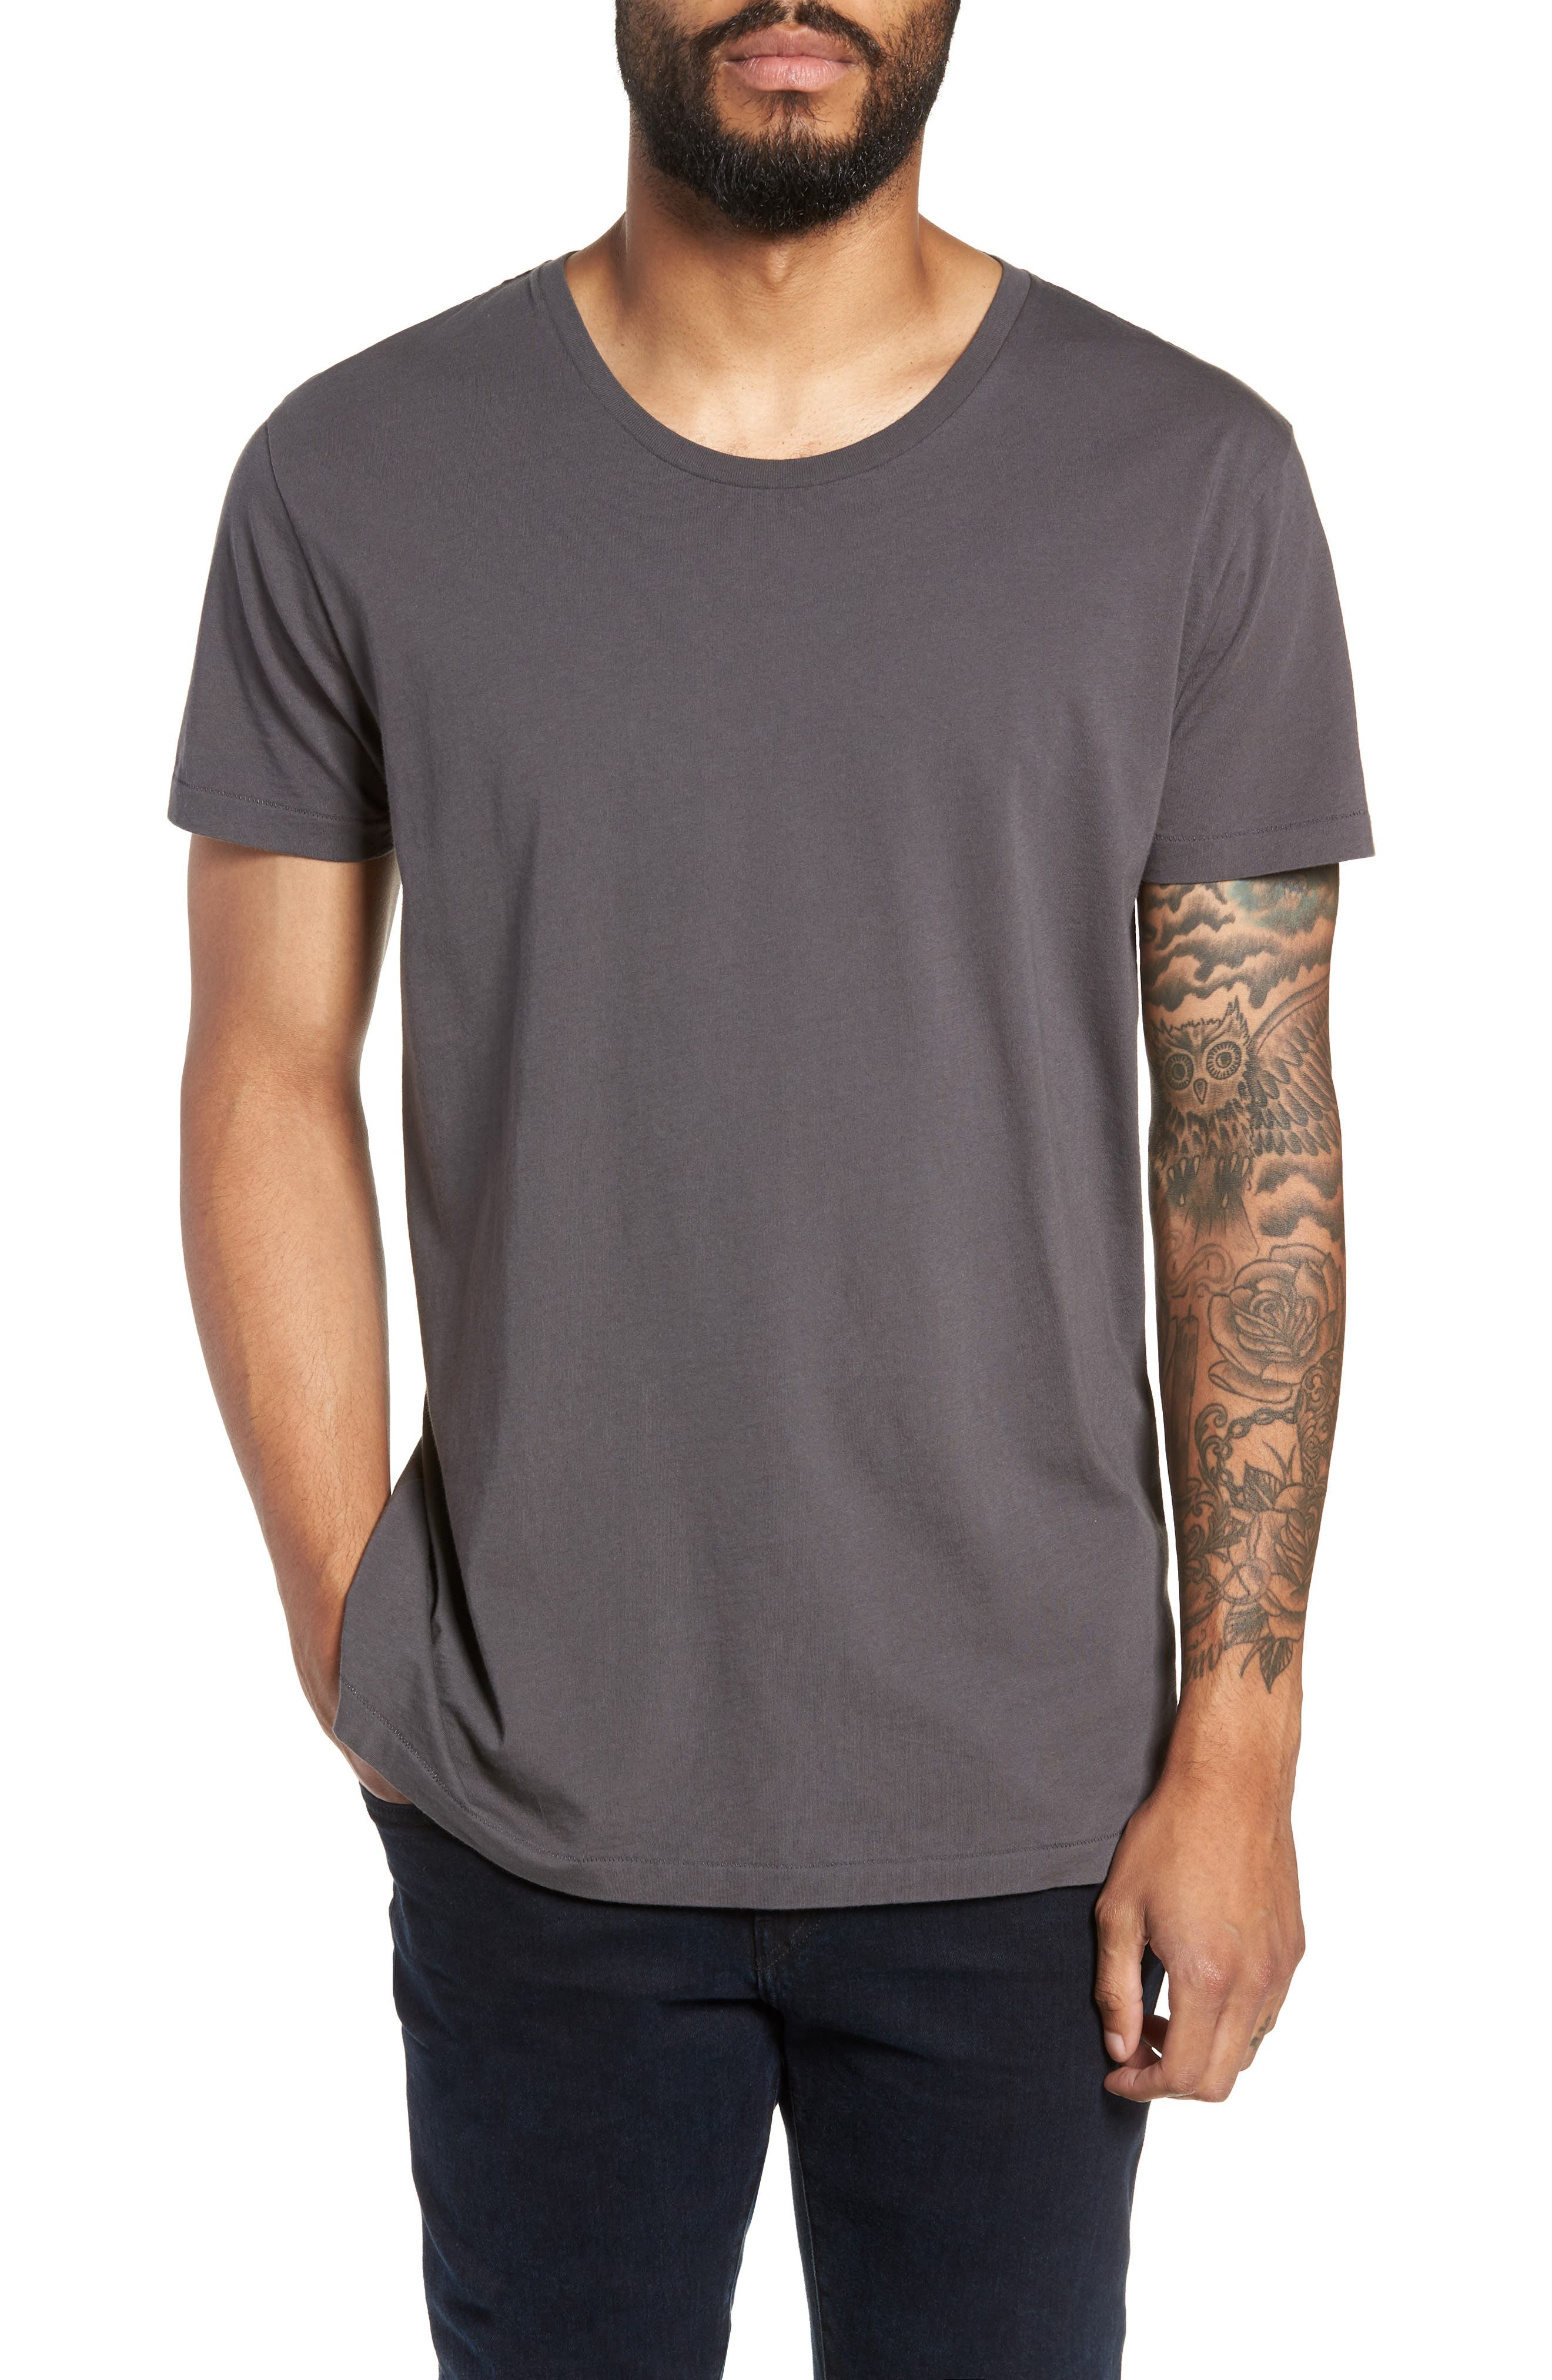 Alias Relaxed Fit T-Shirt,                             Main thumbnail 1, color,                             DARK ANTRACITE